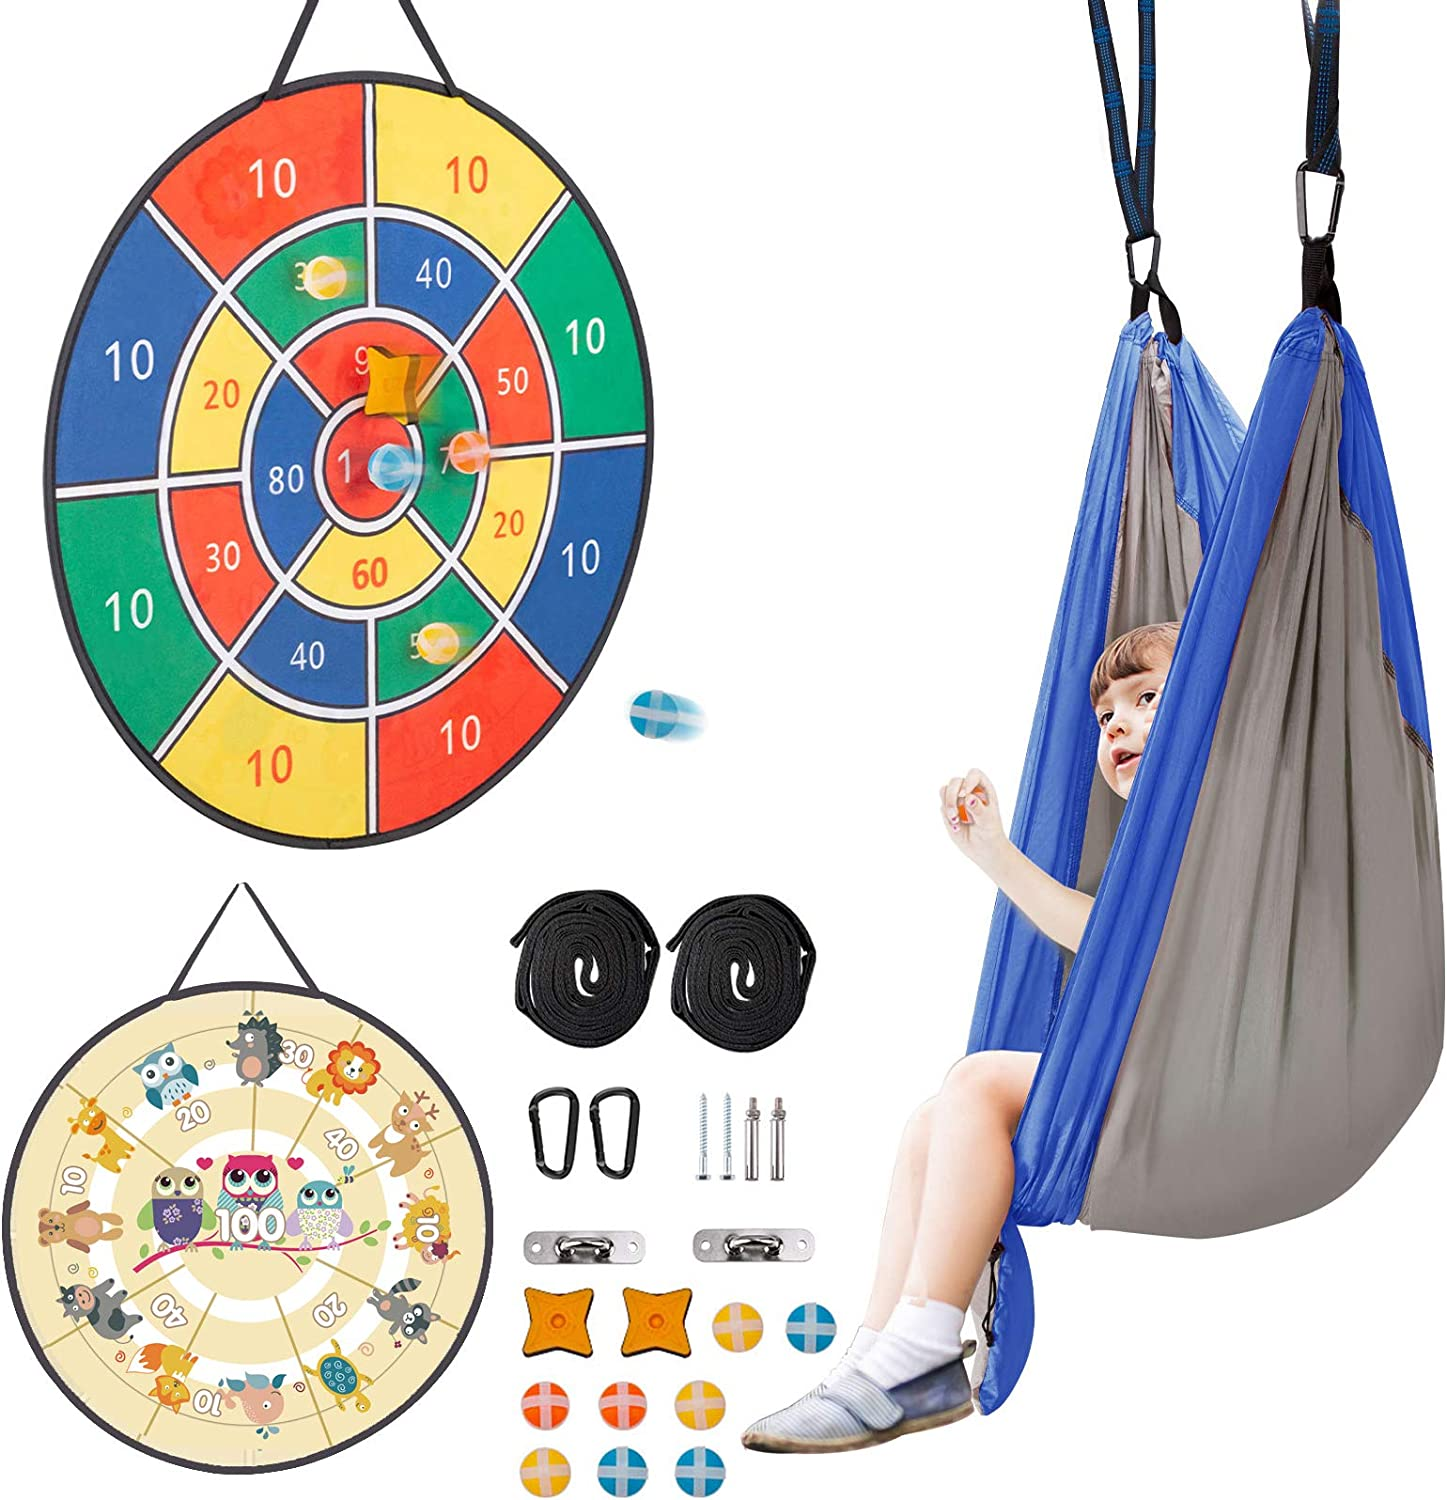 AVAH Indoor Swing for Kids & Adults Child Hanging Hammock Chair Swing with Dart Board with 8 Sticky Balls Kids Swing Indoor/Outdoor for Children Suitable for Family Games